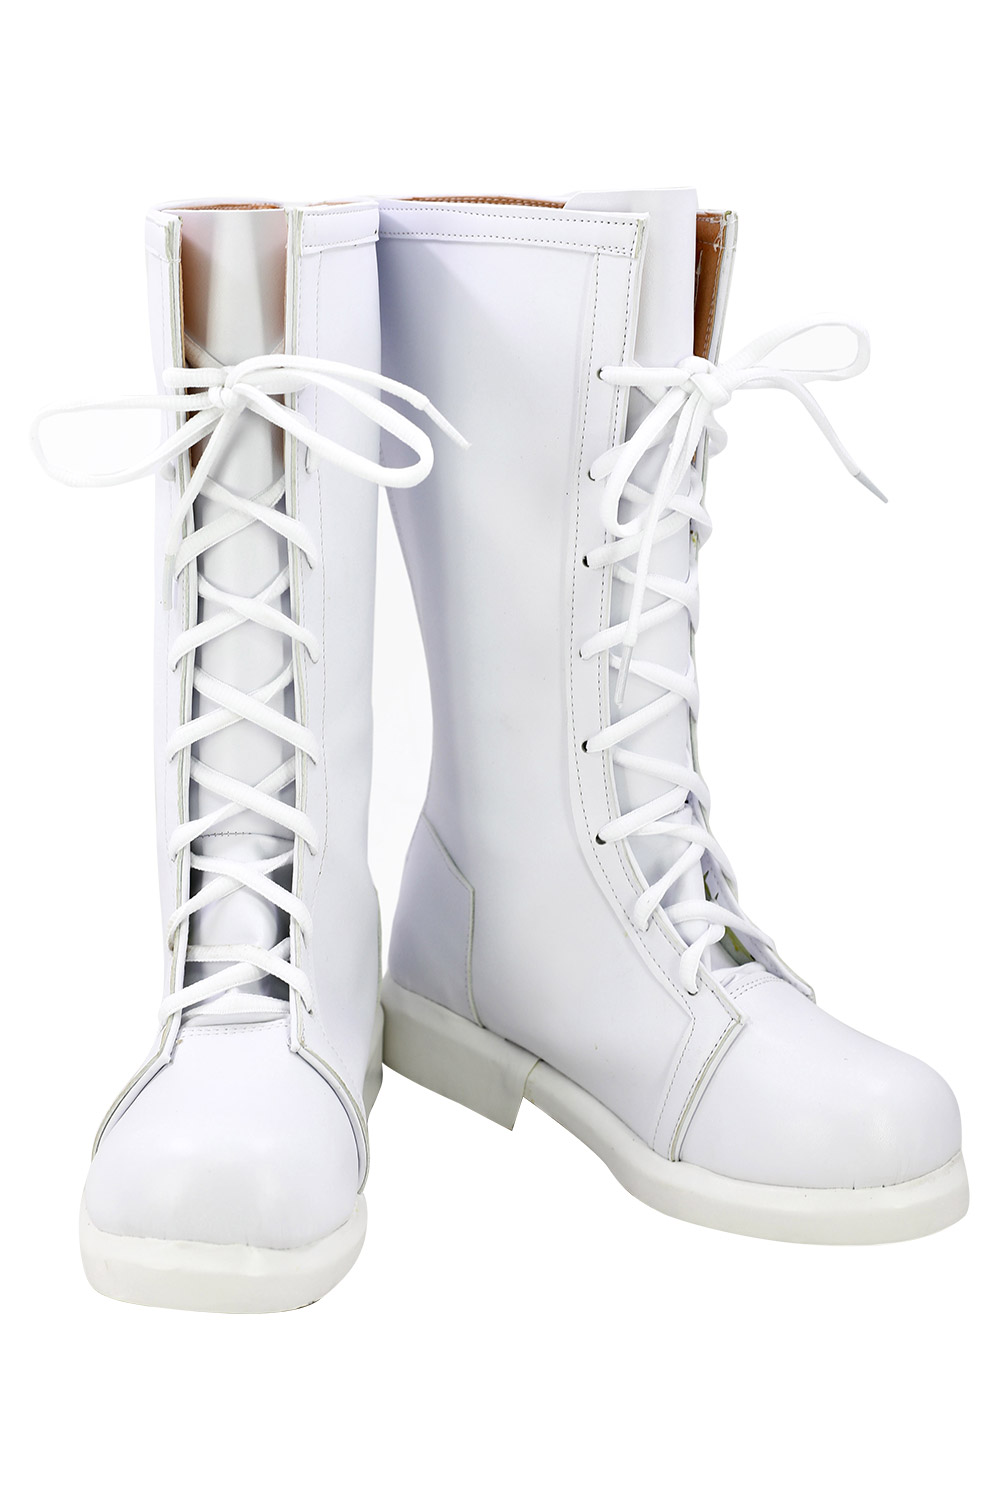 Anime Cells at Work Cosplay SHoes White Blood Cell Neutrophil Shoes Cosplay Boots Halloween Carnival Masquerade COS Shoes